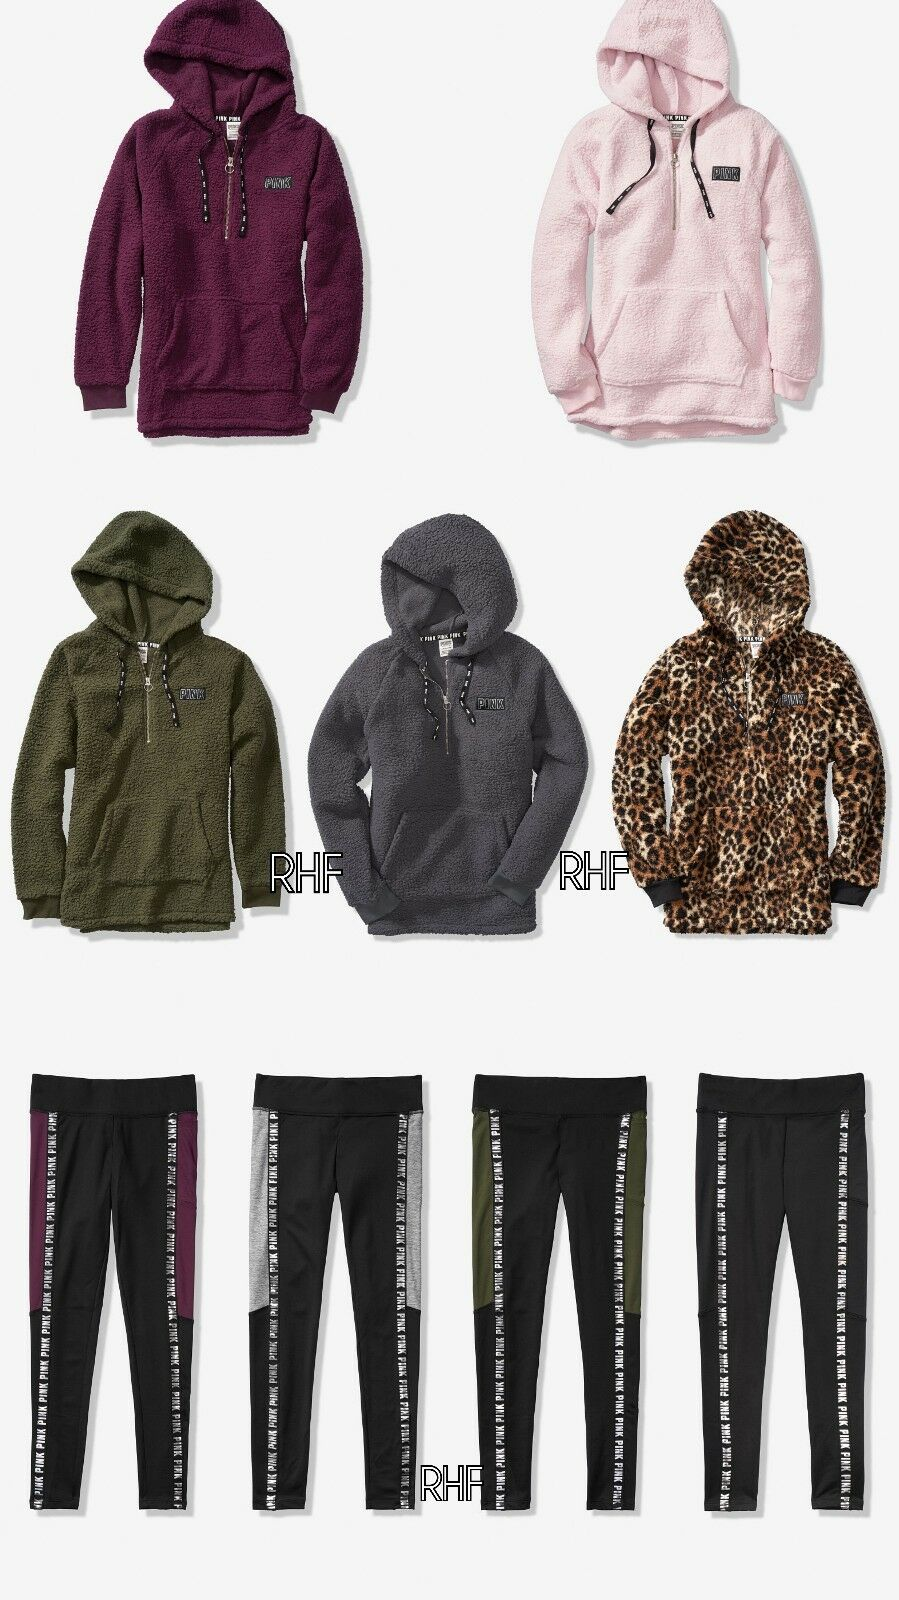 Victoria's Secret PINK Sherpa Hoodie + Fleece Lined Legging Outfit Set S-L NWT